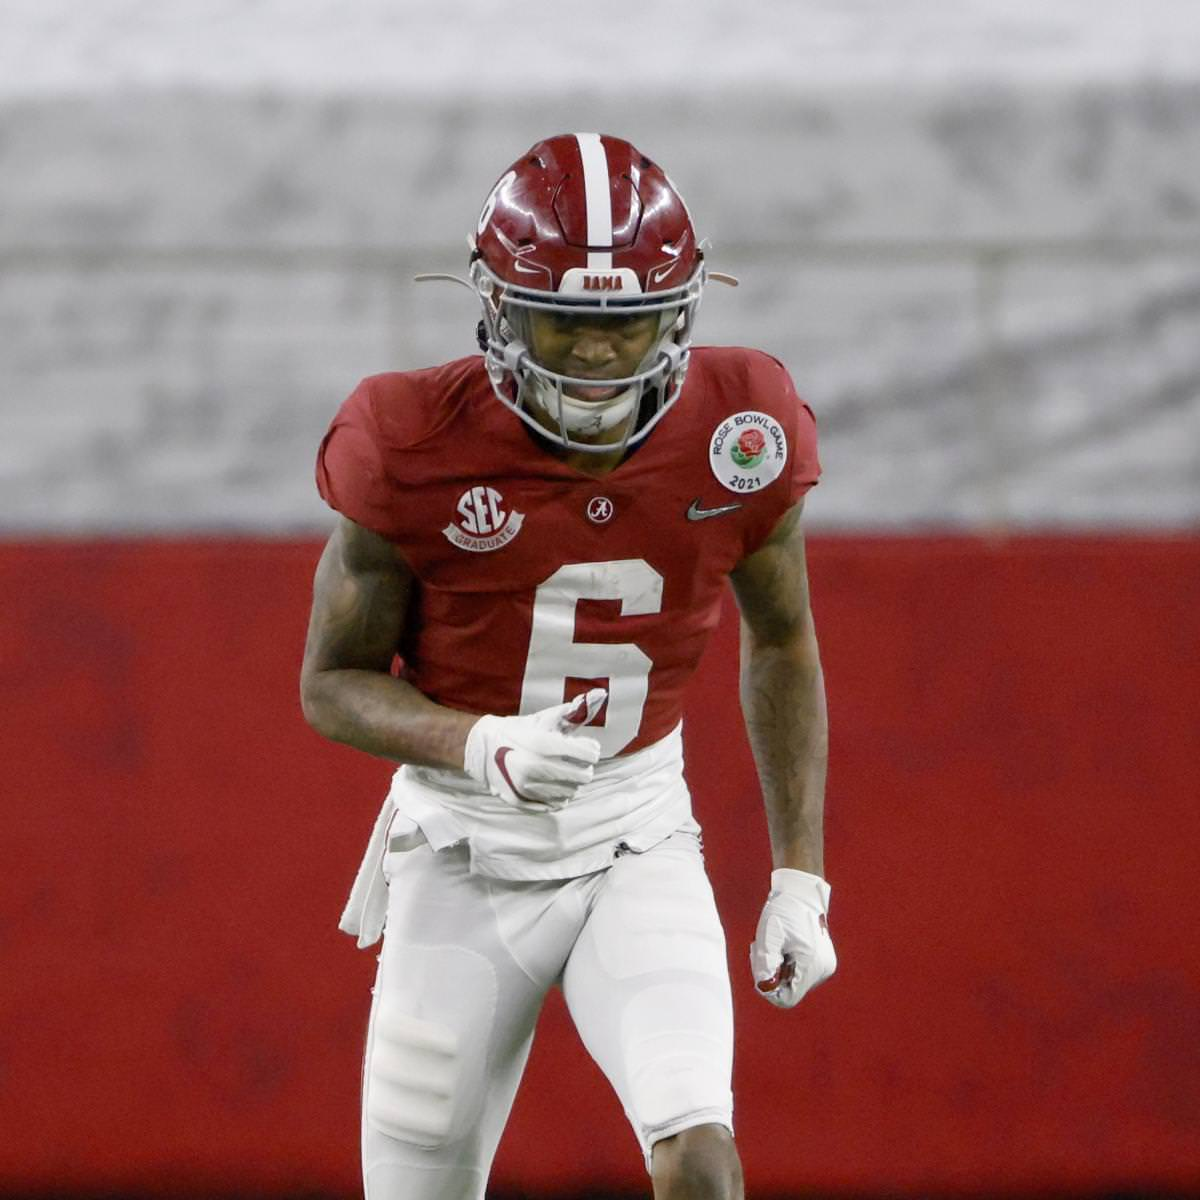 College Football Championship 2021: NFL Draft Prospects to Watch